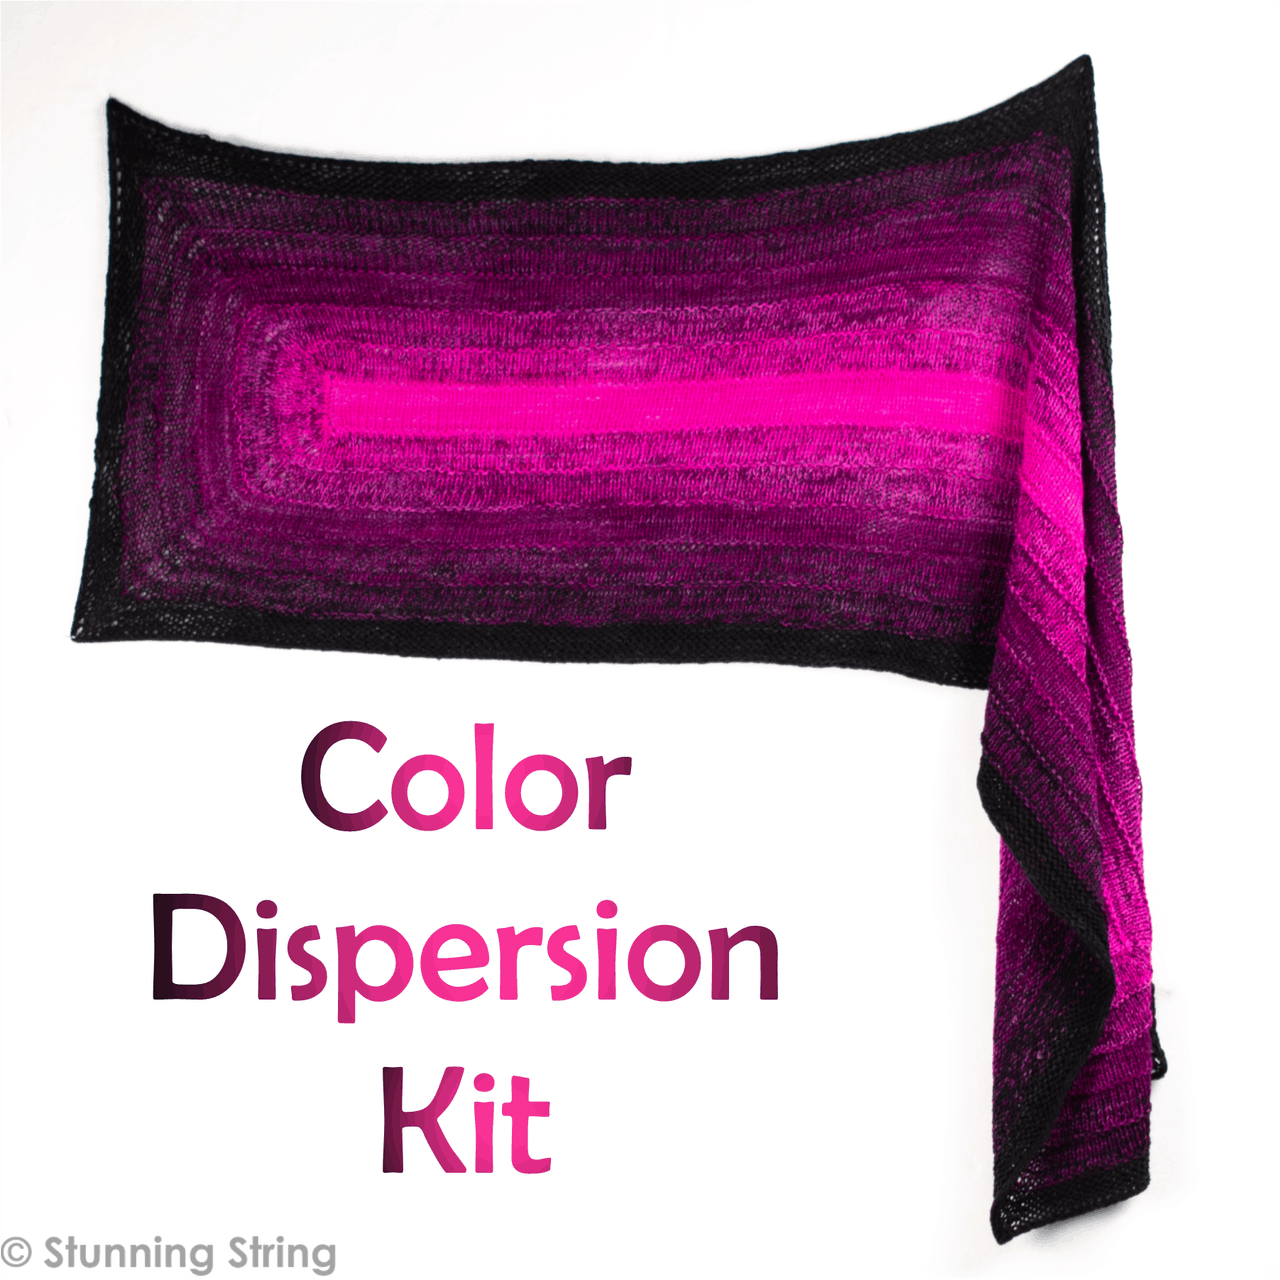 Color Dispersion Kit